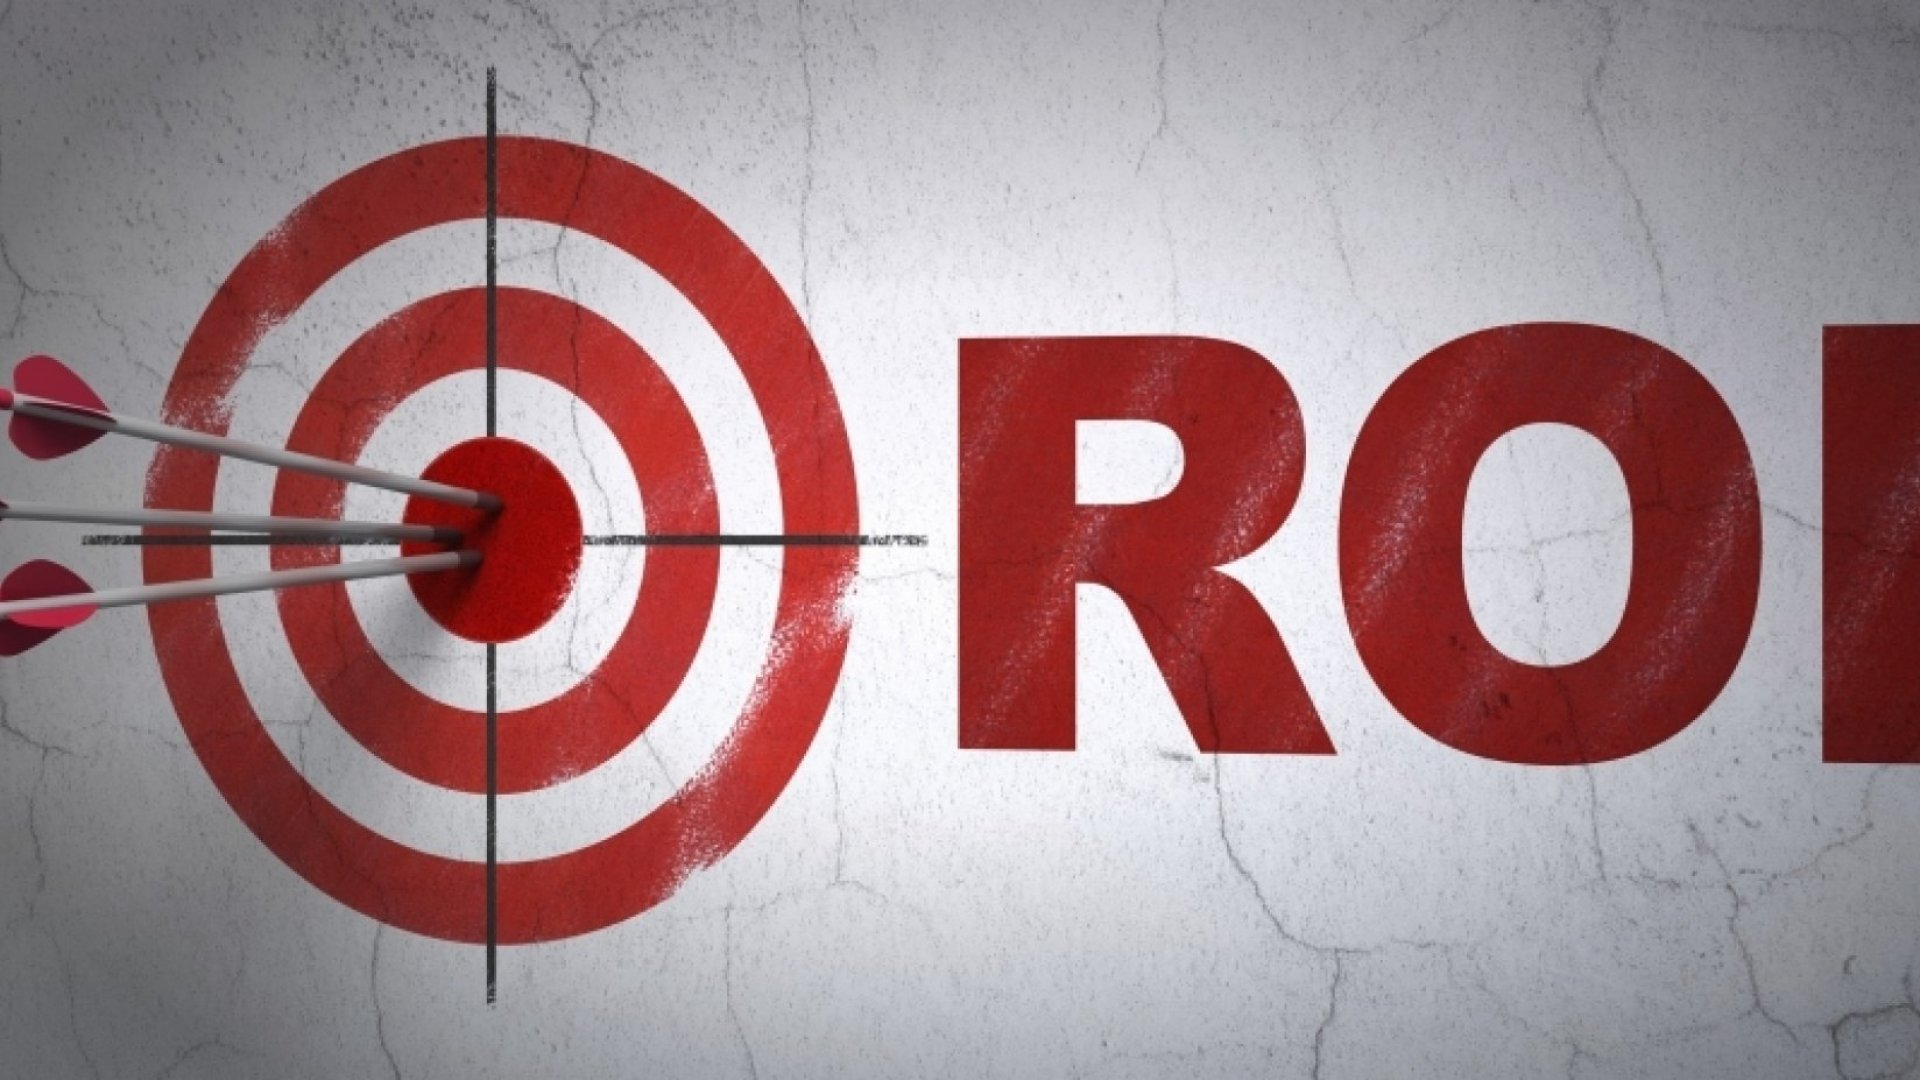 Promo Codes: An Overlooked Tool for ROI Measurement